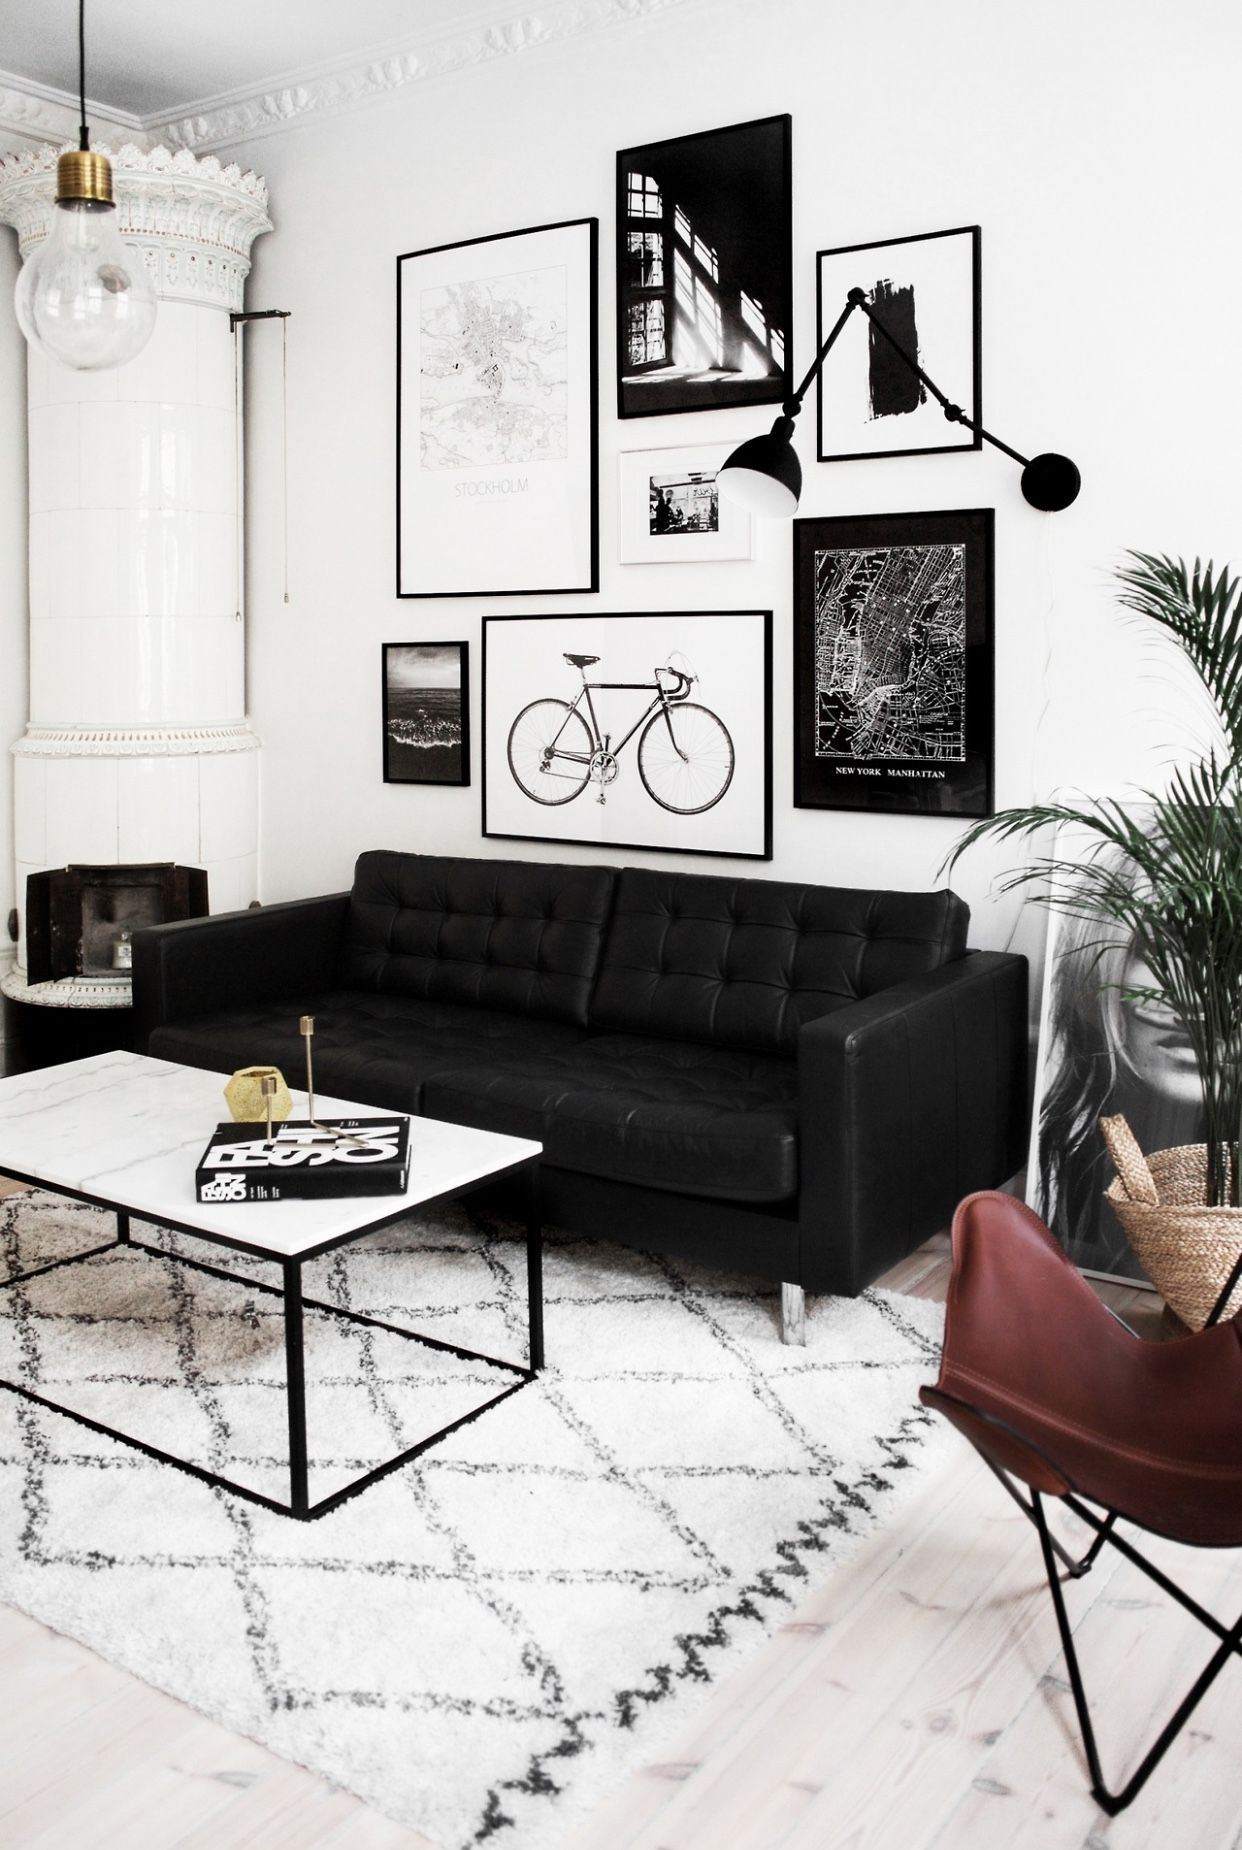 Black and white graphic art over a couch